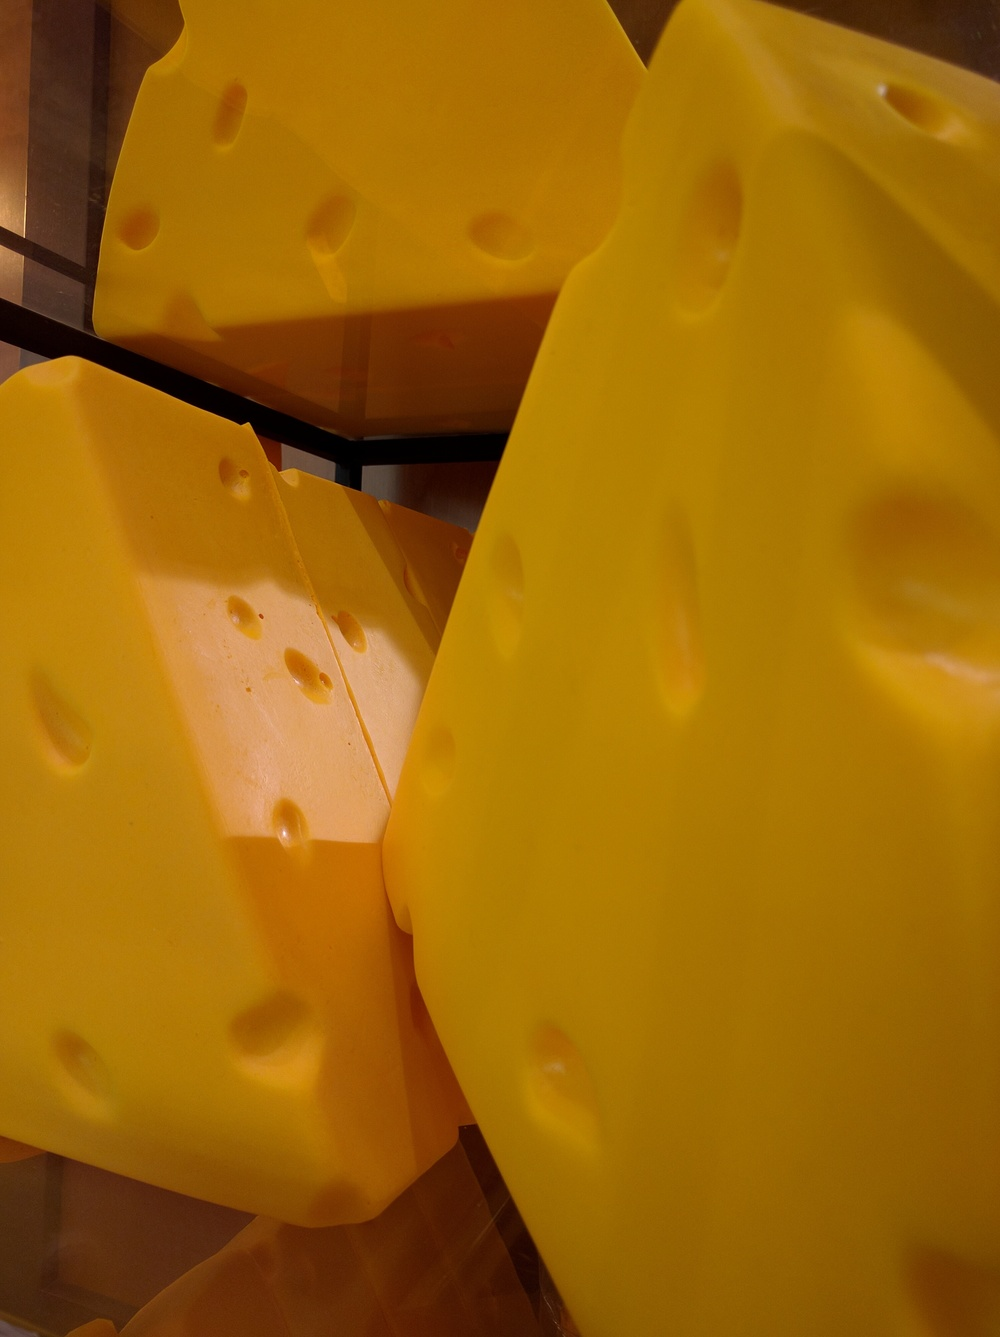 Cheese head (photo: ©Rob Schertzer 2015)